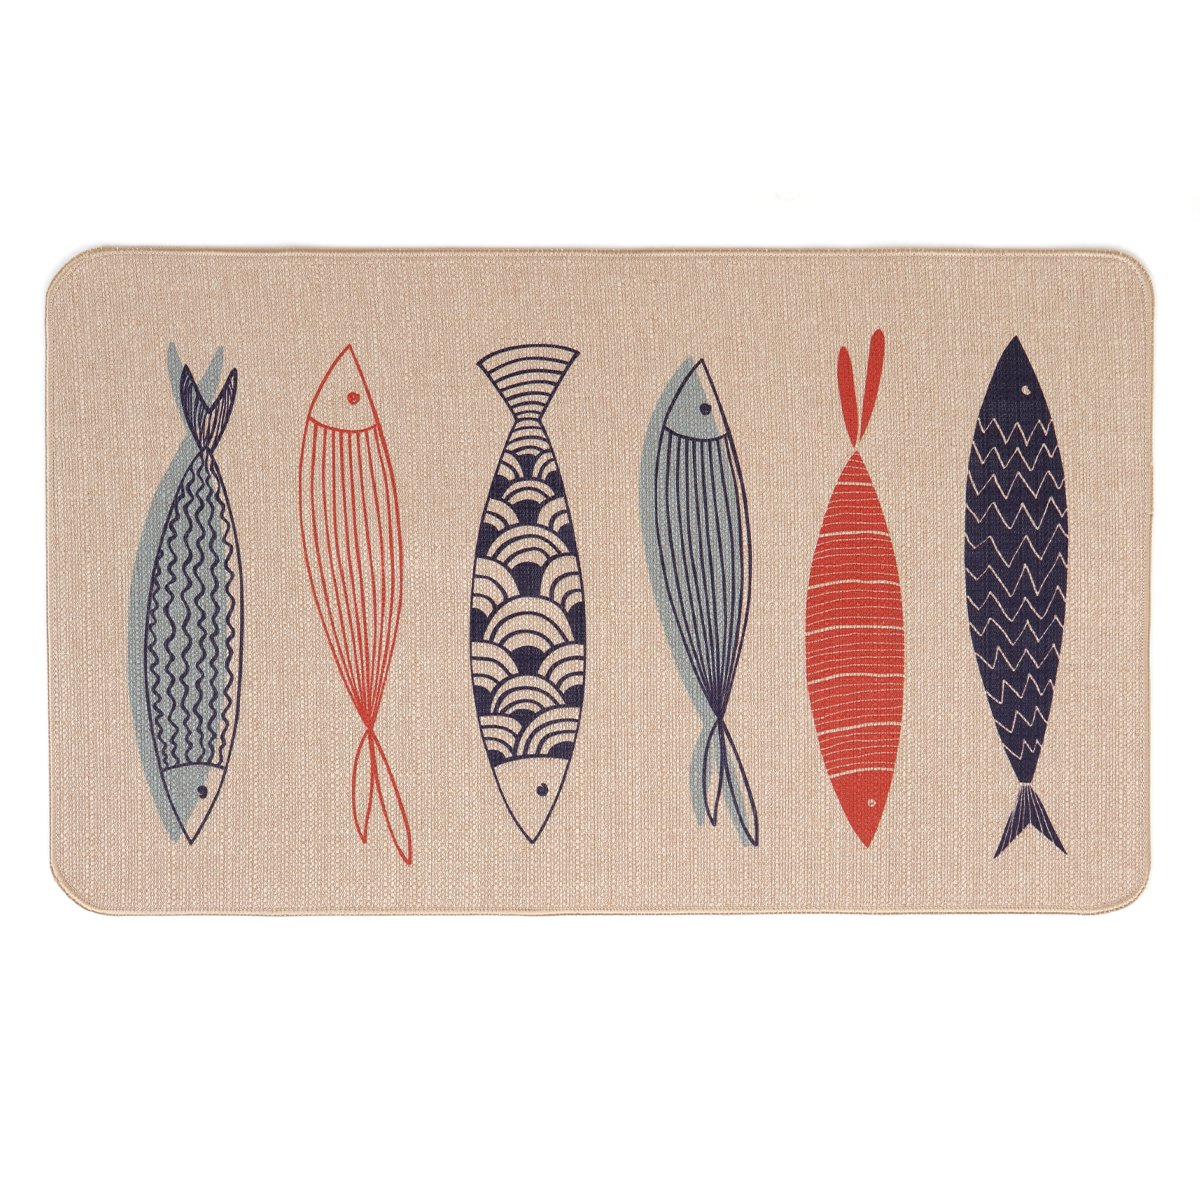 LEEVAN Kitchen Rugs Mat, Microfiber Non-Skid Rubber Backing Washable Doormat Floormat Area Rug Carpet(Six Fishes,17'' X 29'')